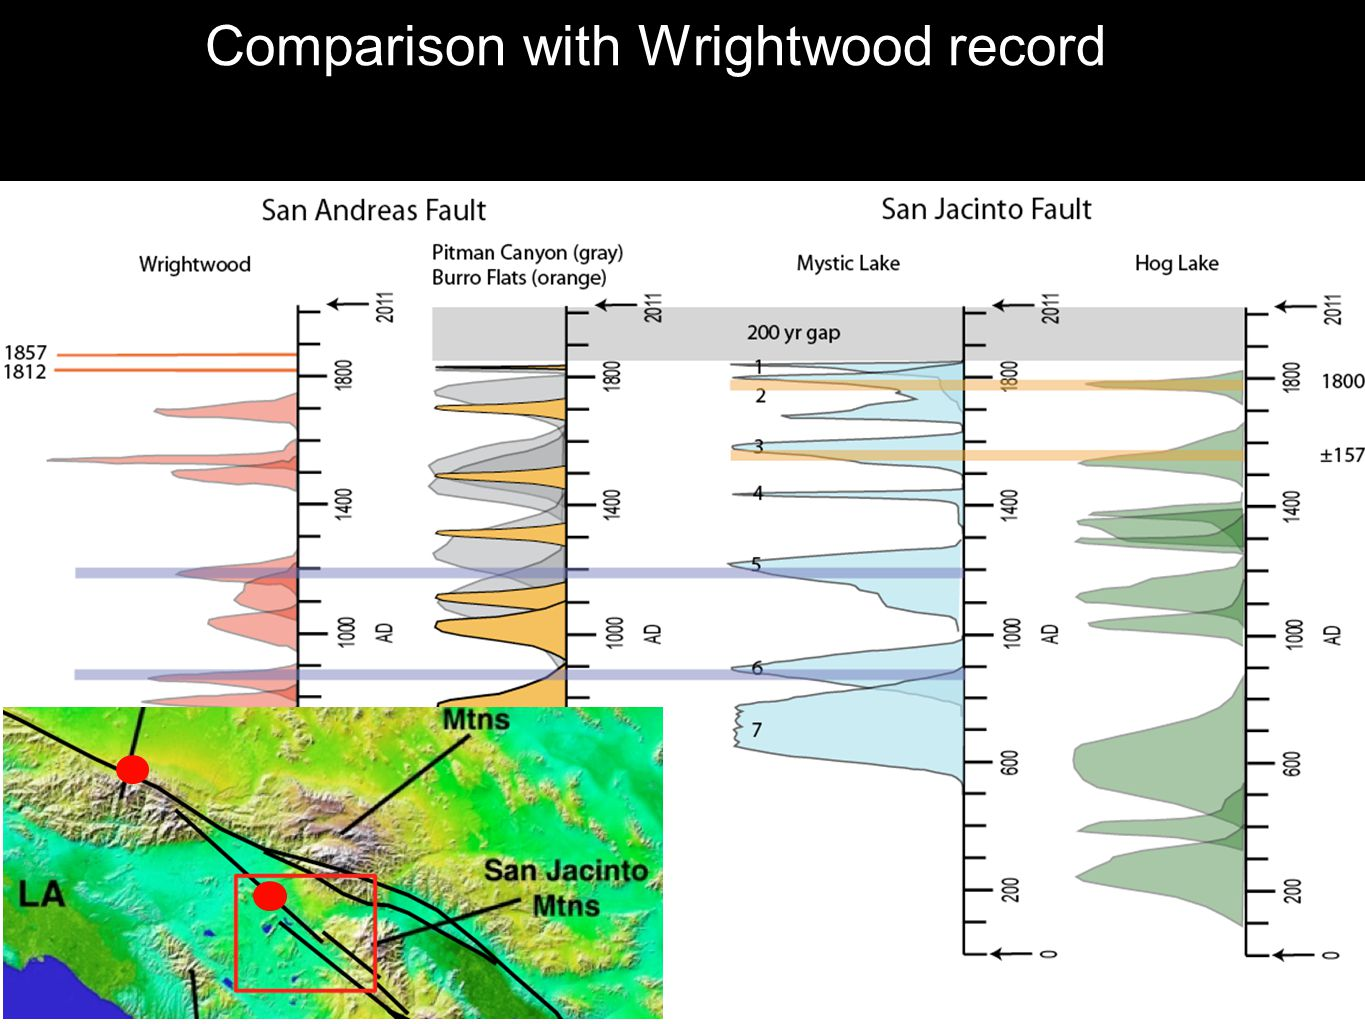 Comparison with Wrightwood record